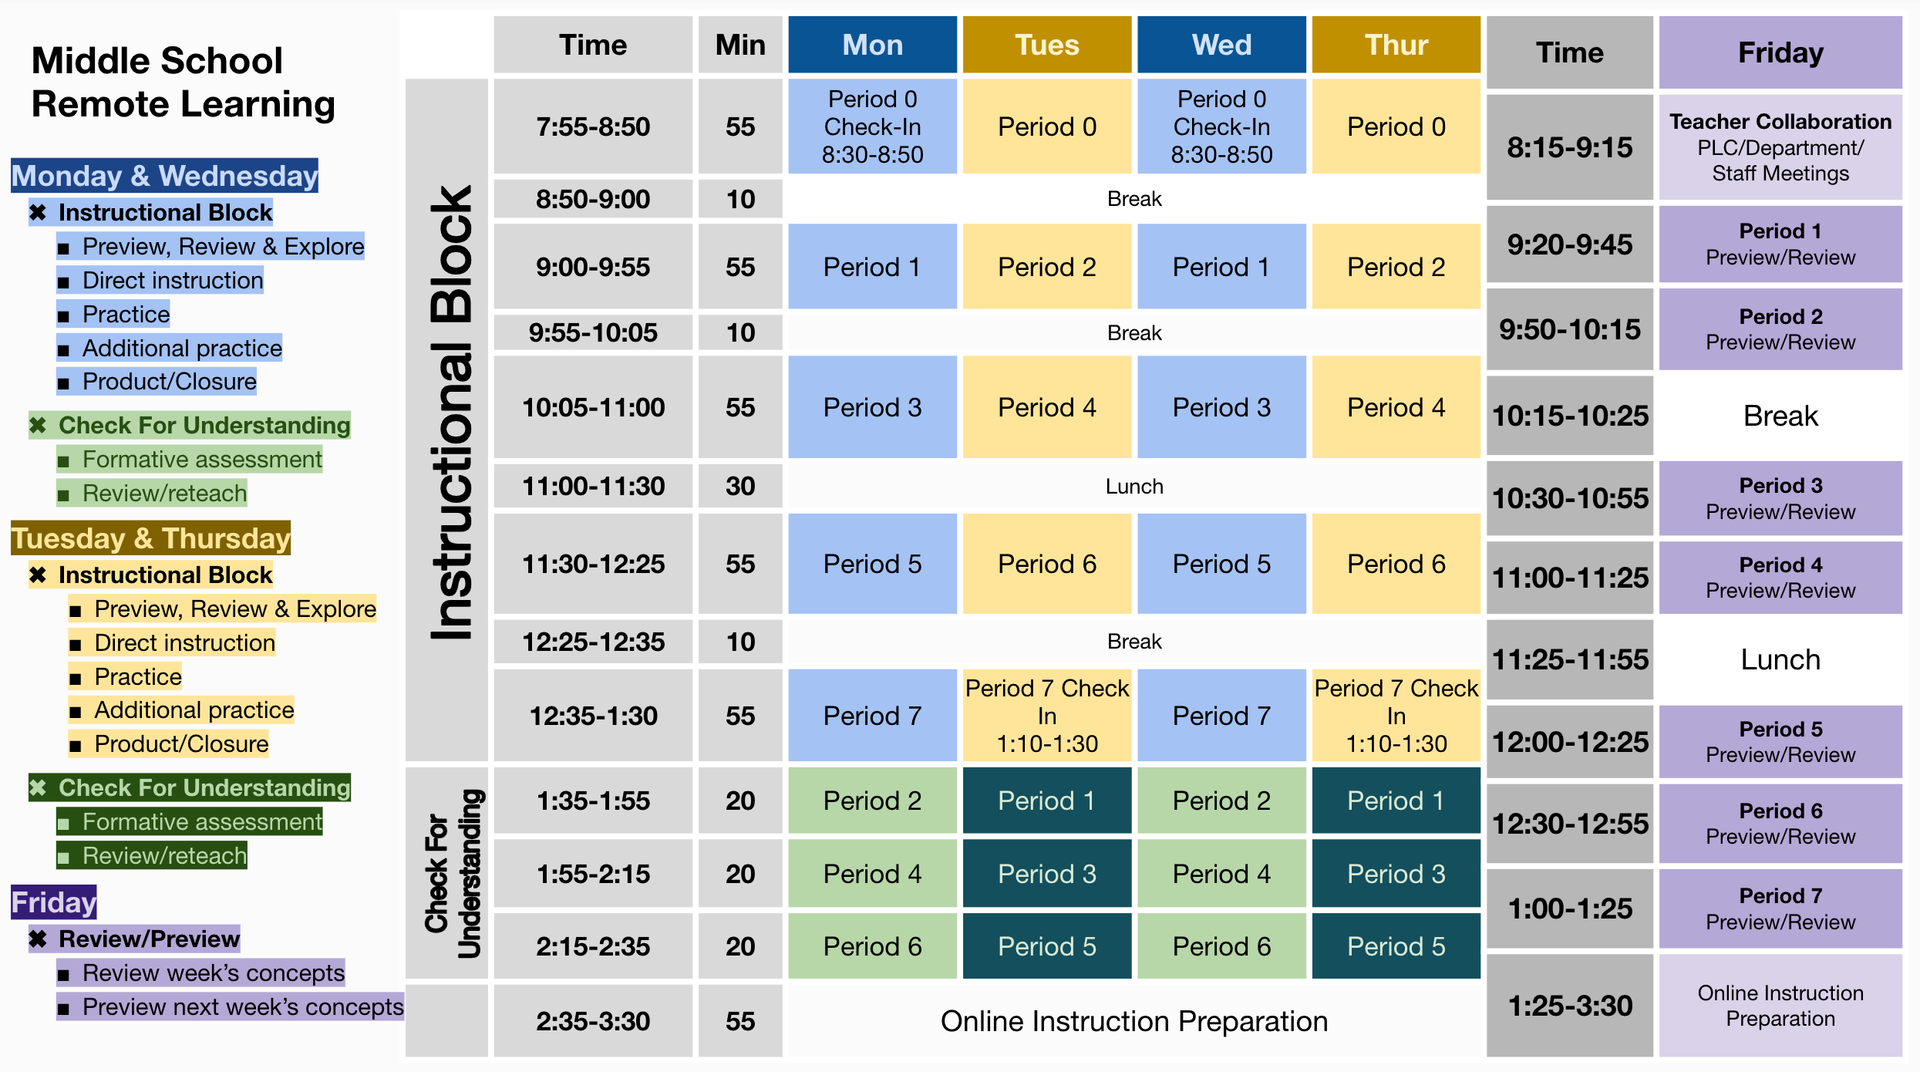 Middle school schedule for Remote Learning.